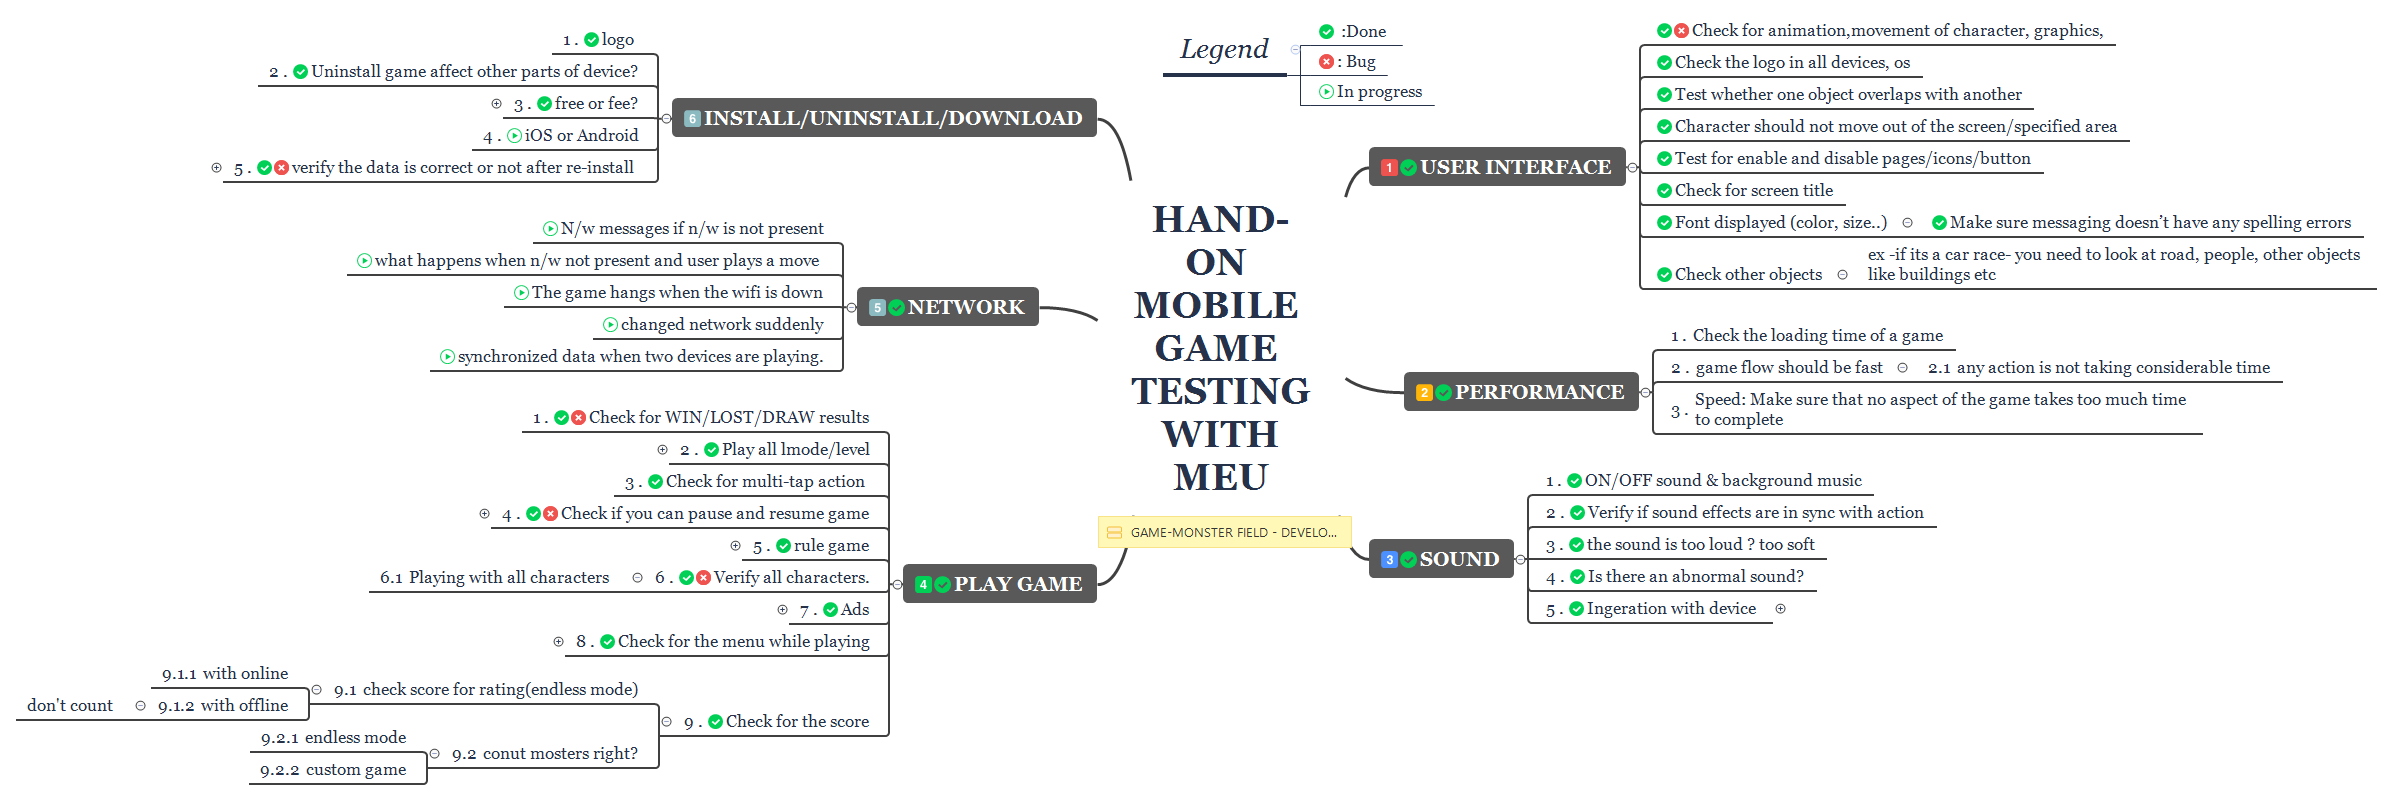 HAND-ON MOBILE GAME TESTING WITH MEU - XMind - Mind Mapping